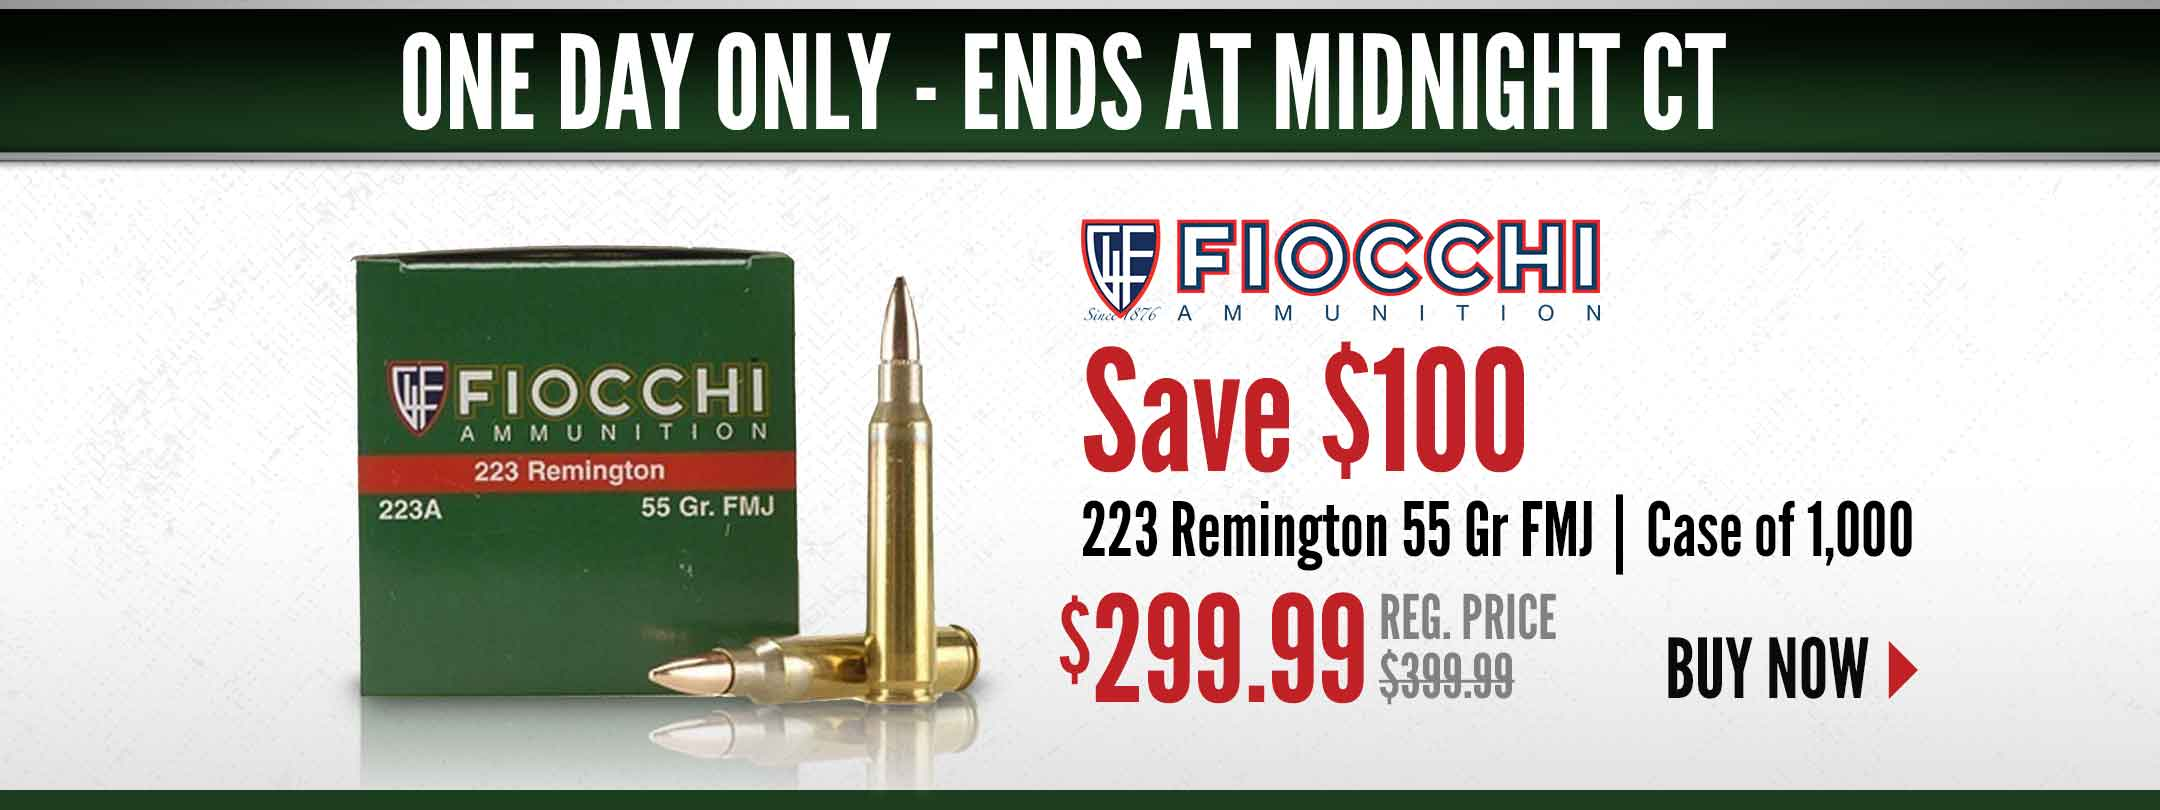 Save $100 on Fiocchi 223 Rem Ammo Case of 1,000